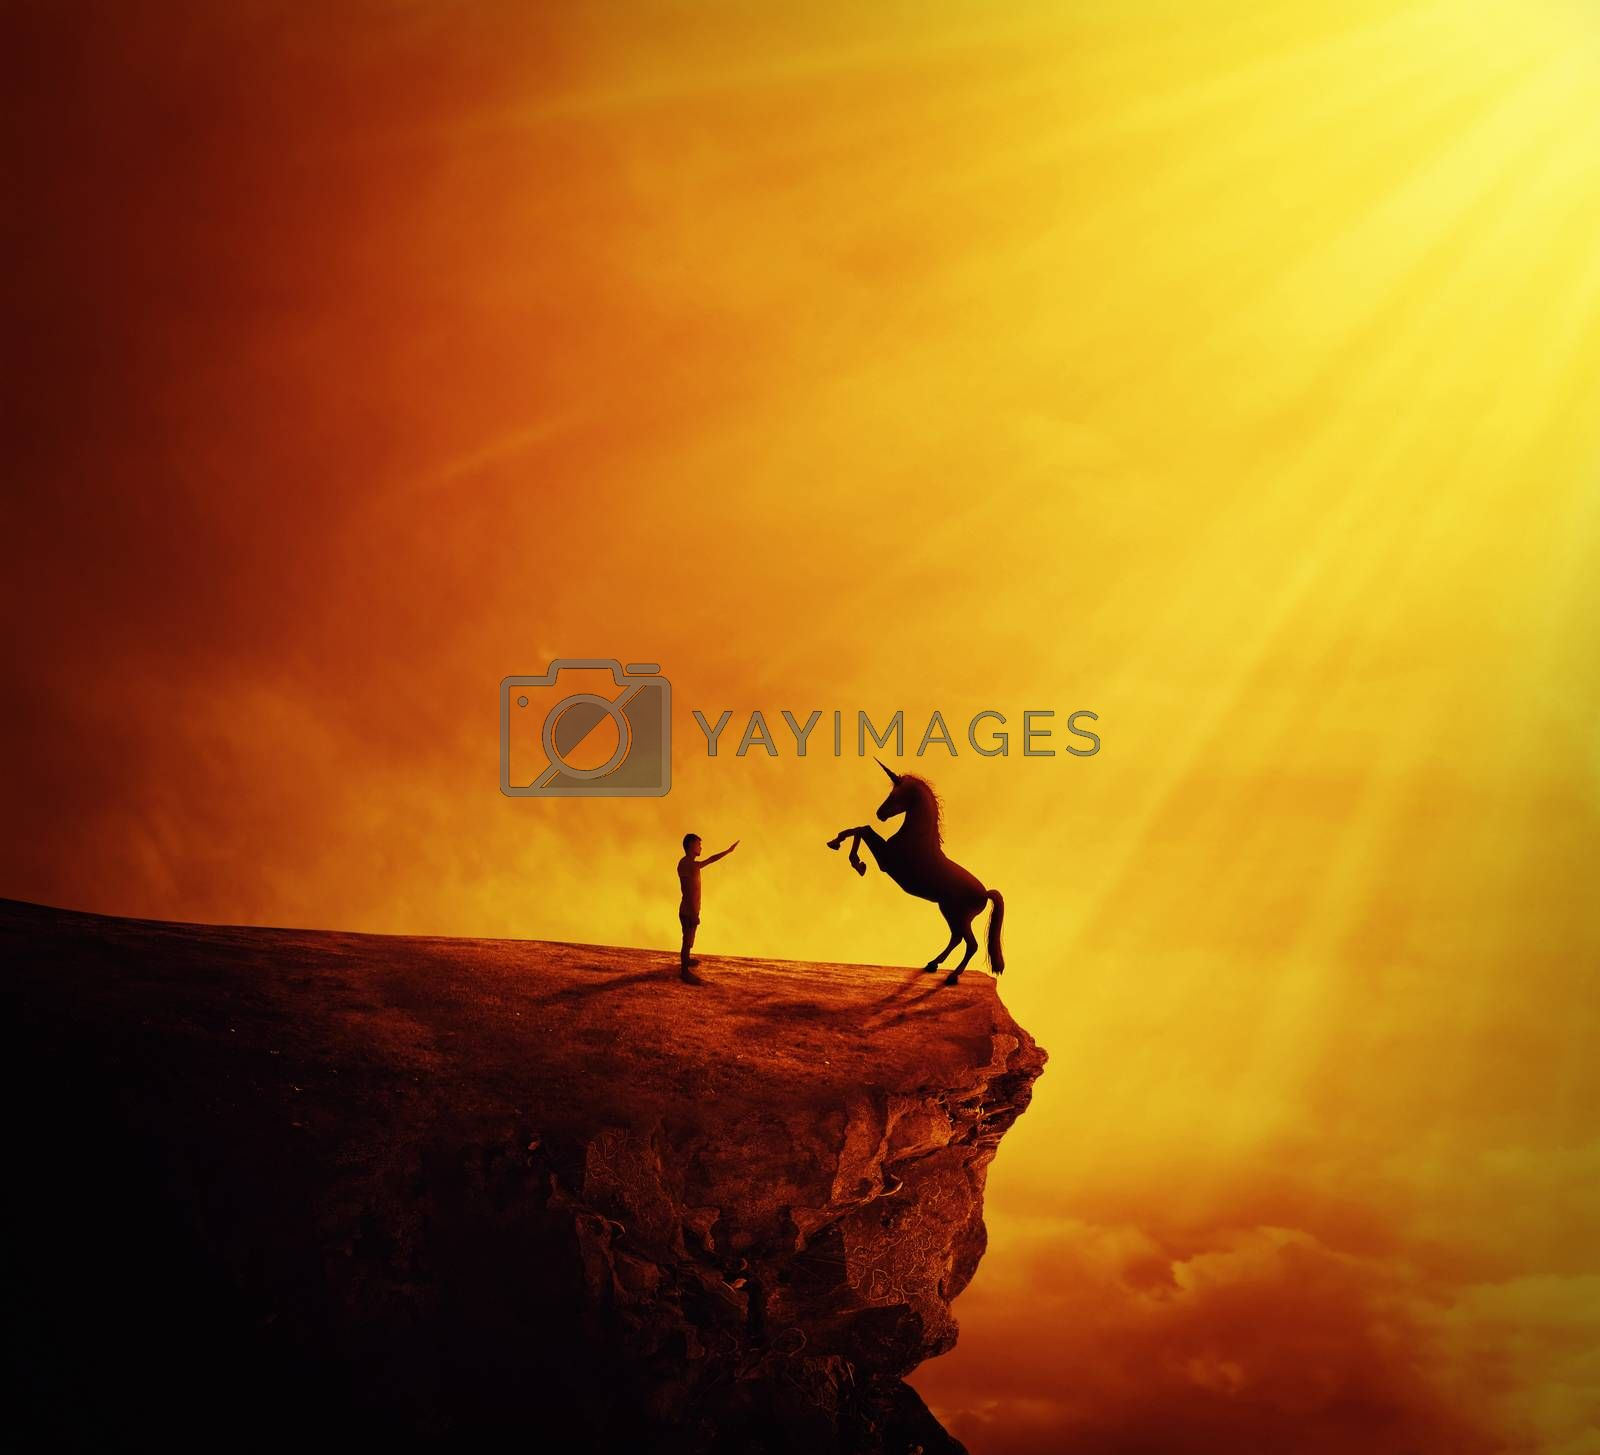 Idyllic view with a boy standing at the edge of a cliff chasm trying to tame a wild unicorn. Begining of a new friendship, fearless symbol